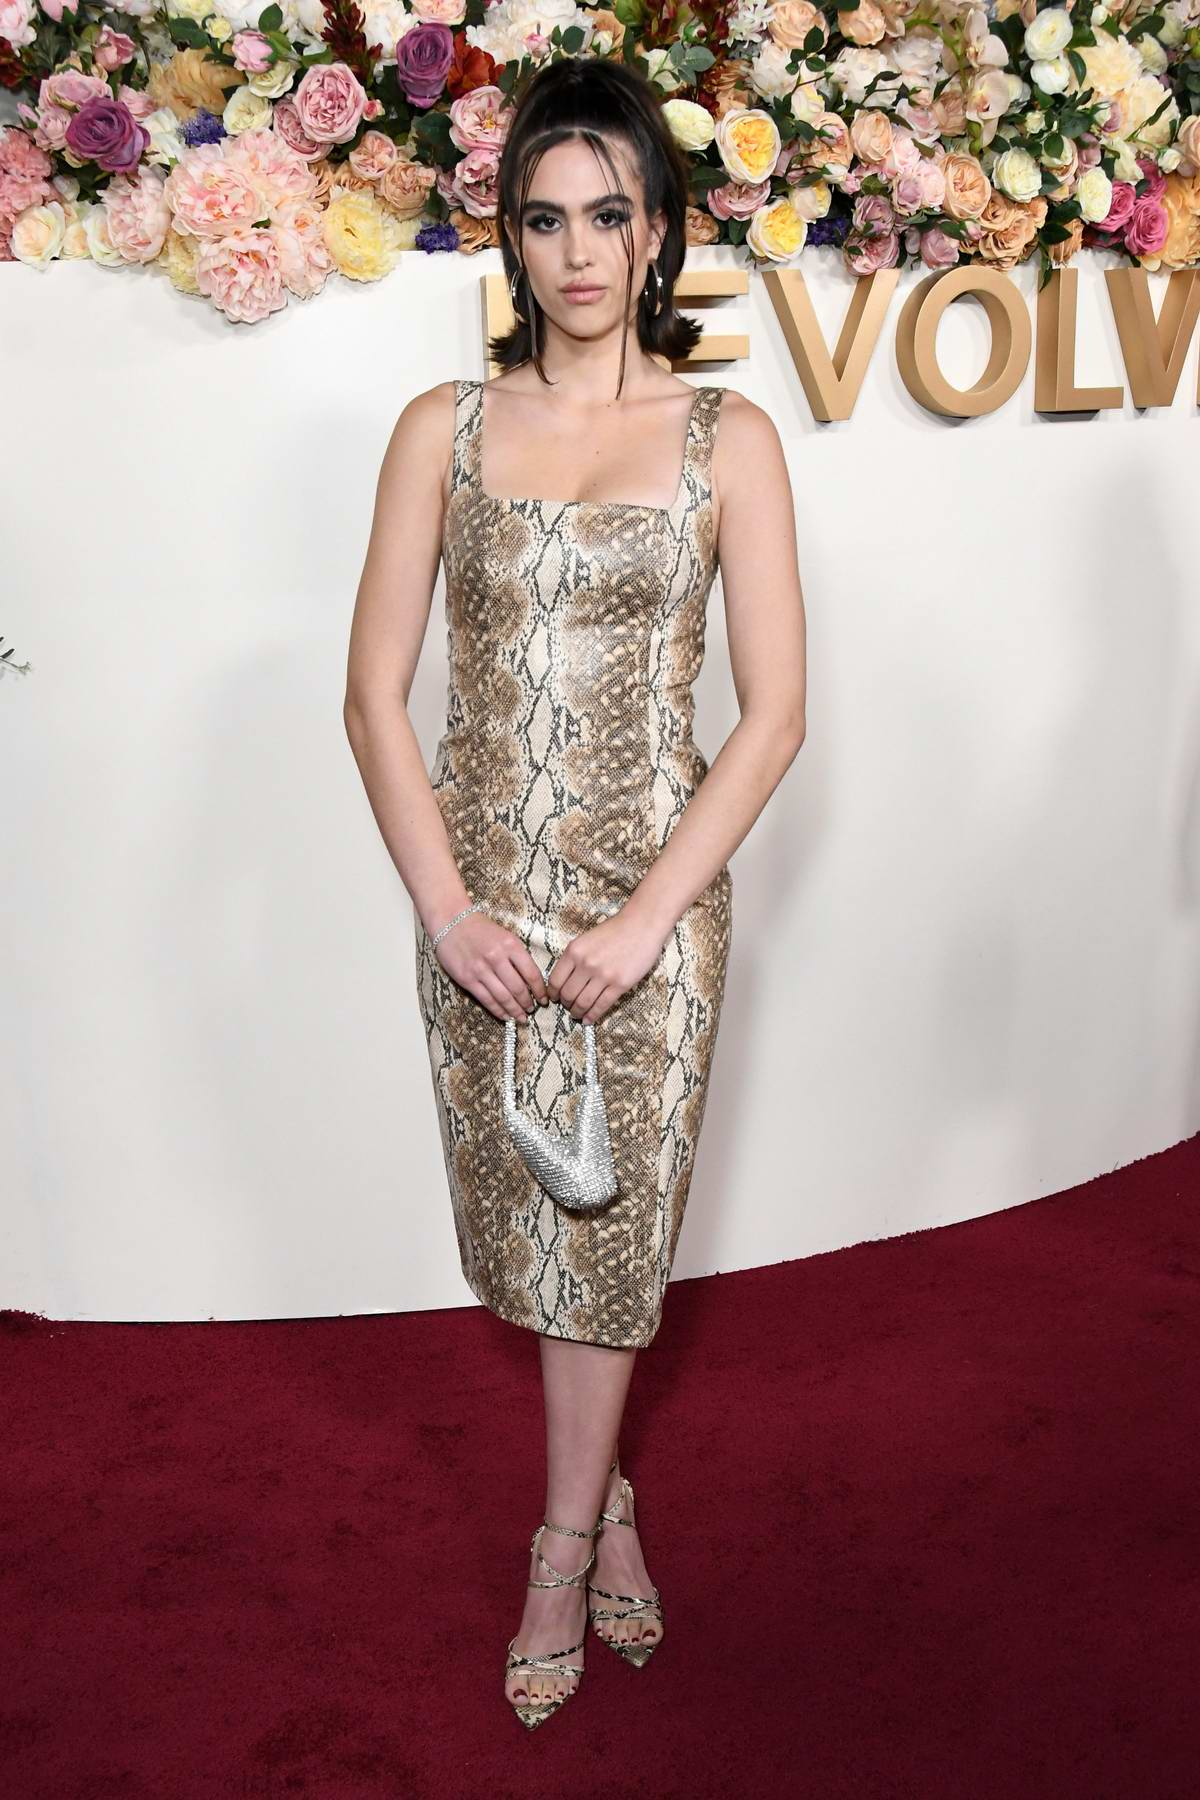 Amelia Hamlin attends the 3rd Annual REVOLVE Awards at Goya Studios in Hollywood, California